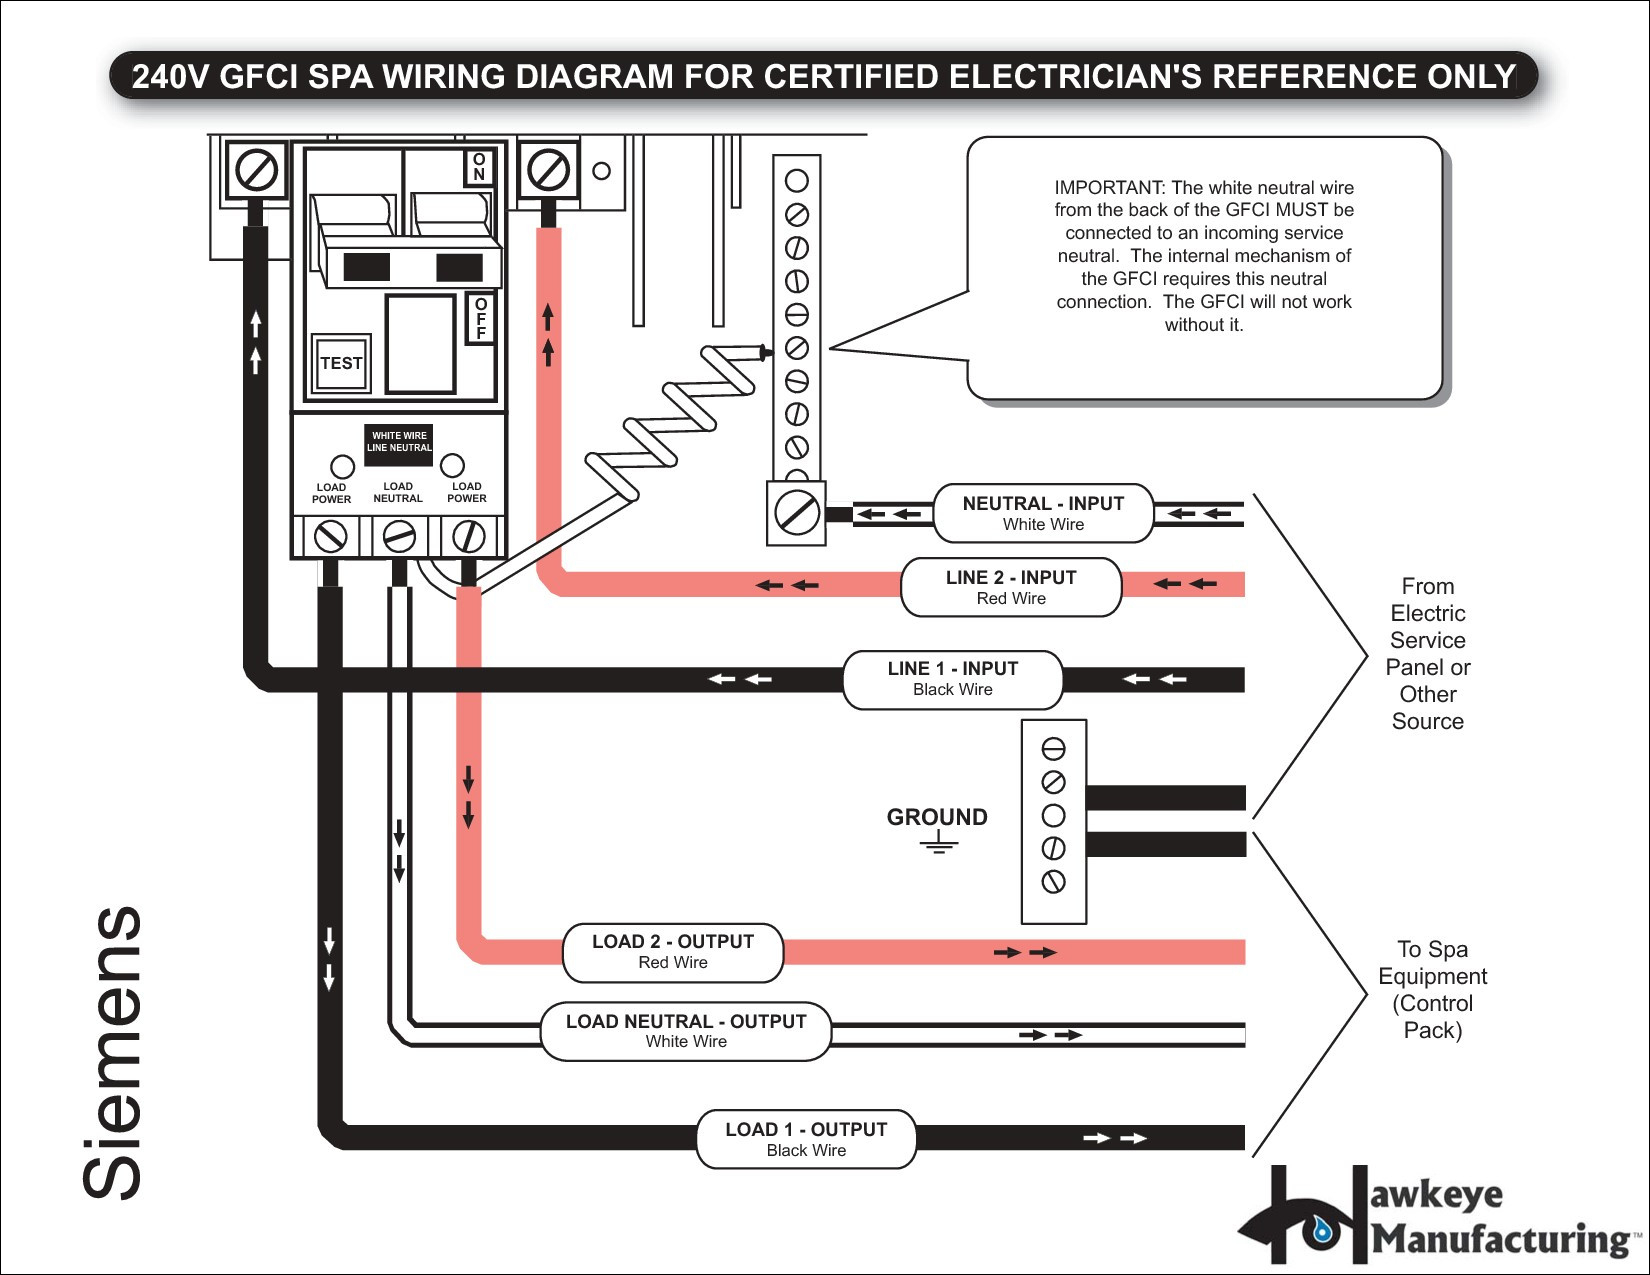 2 Pole Contactor Wiring Auto Electrical Diagram 1967 Buick Schematics